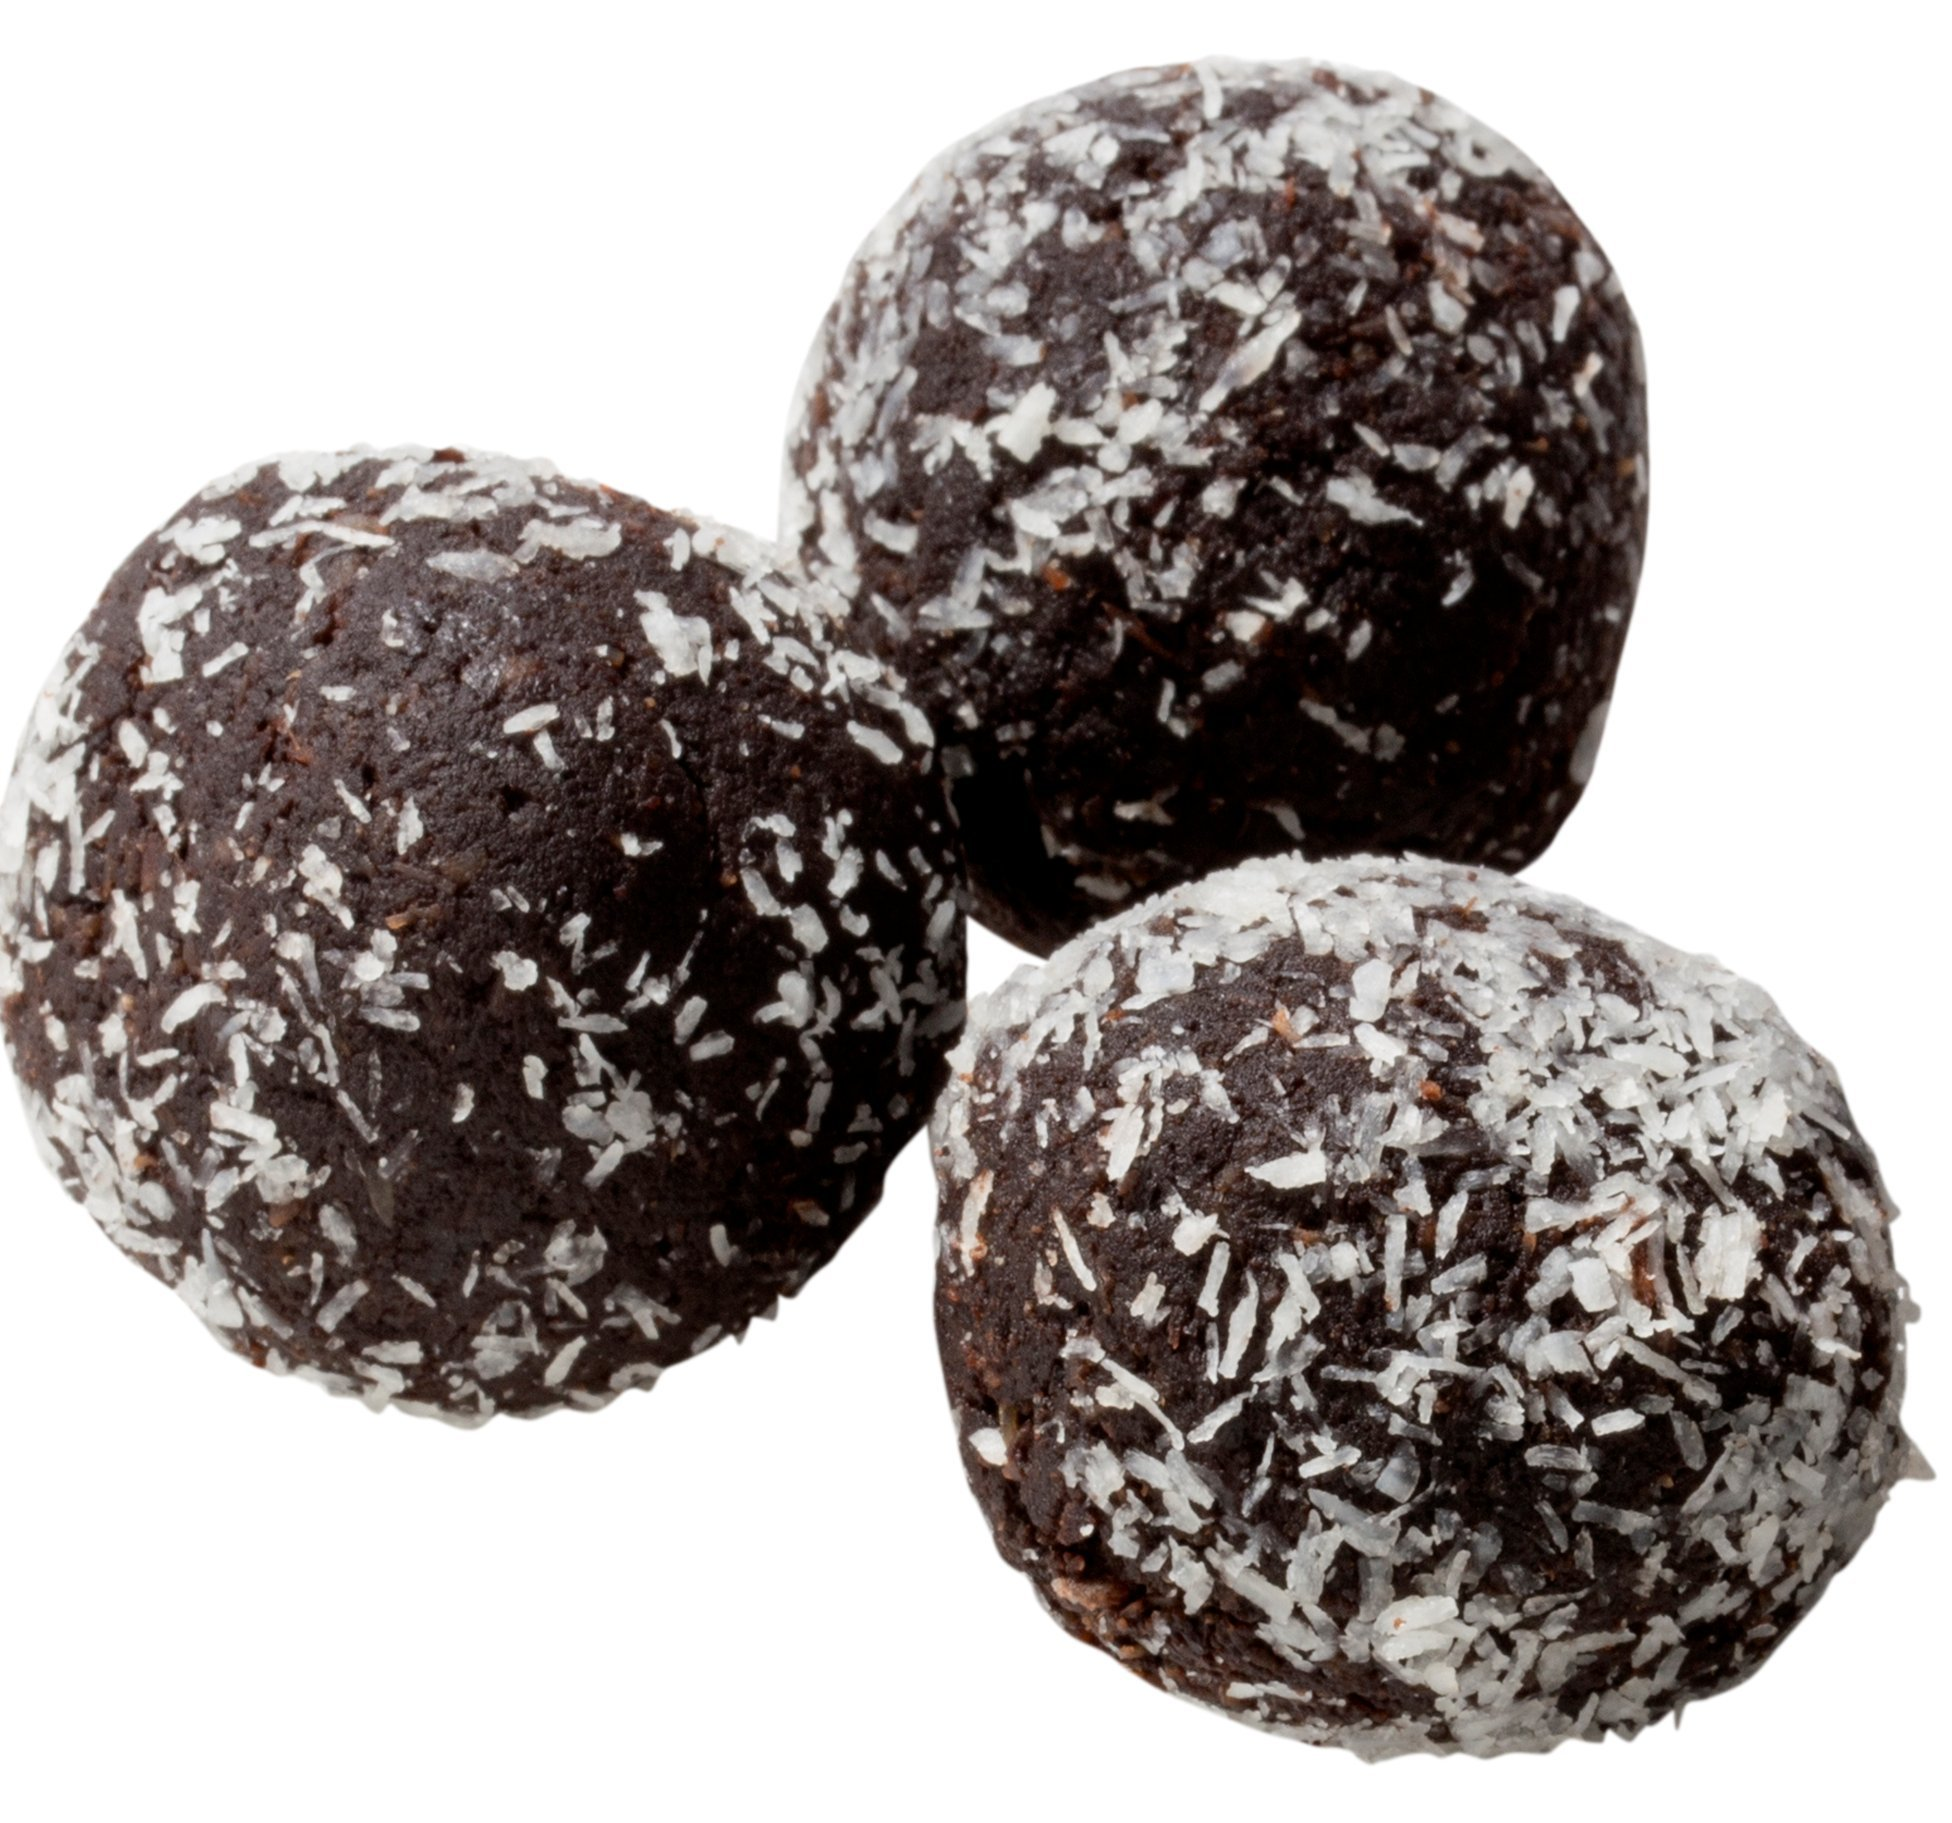 Low Carb Rum Balls - 12 Pack - Only 1 Net Carb Per Ball - Best Tasting Diet Product Ever!